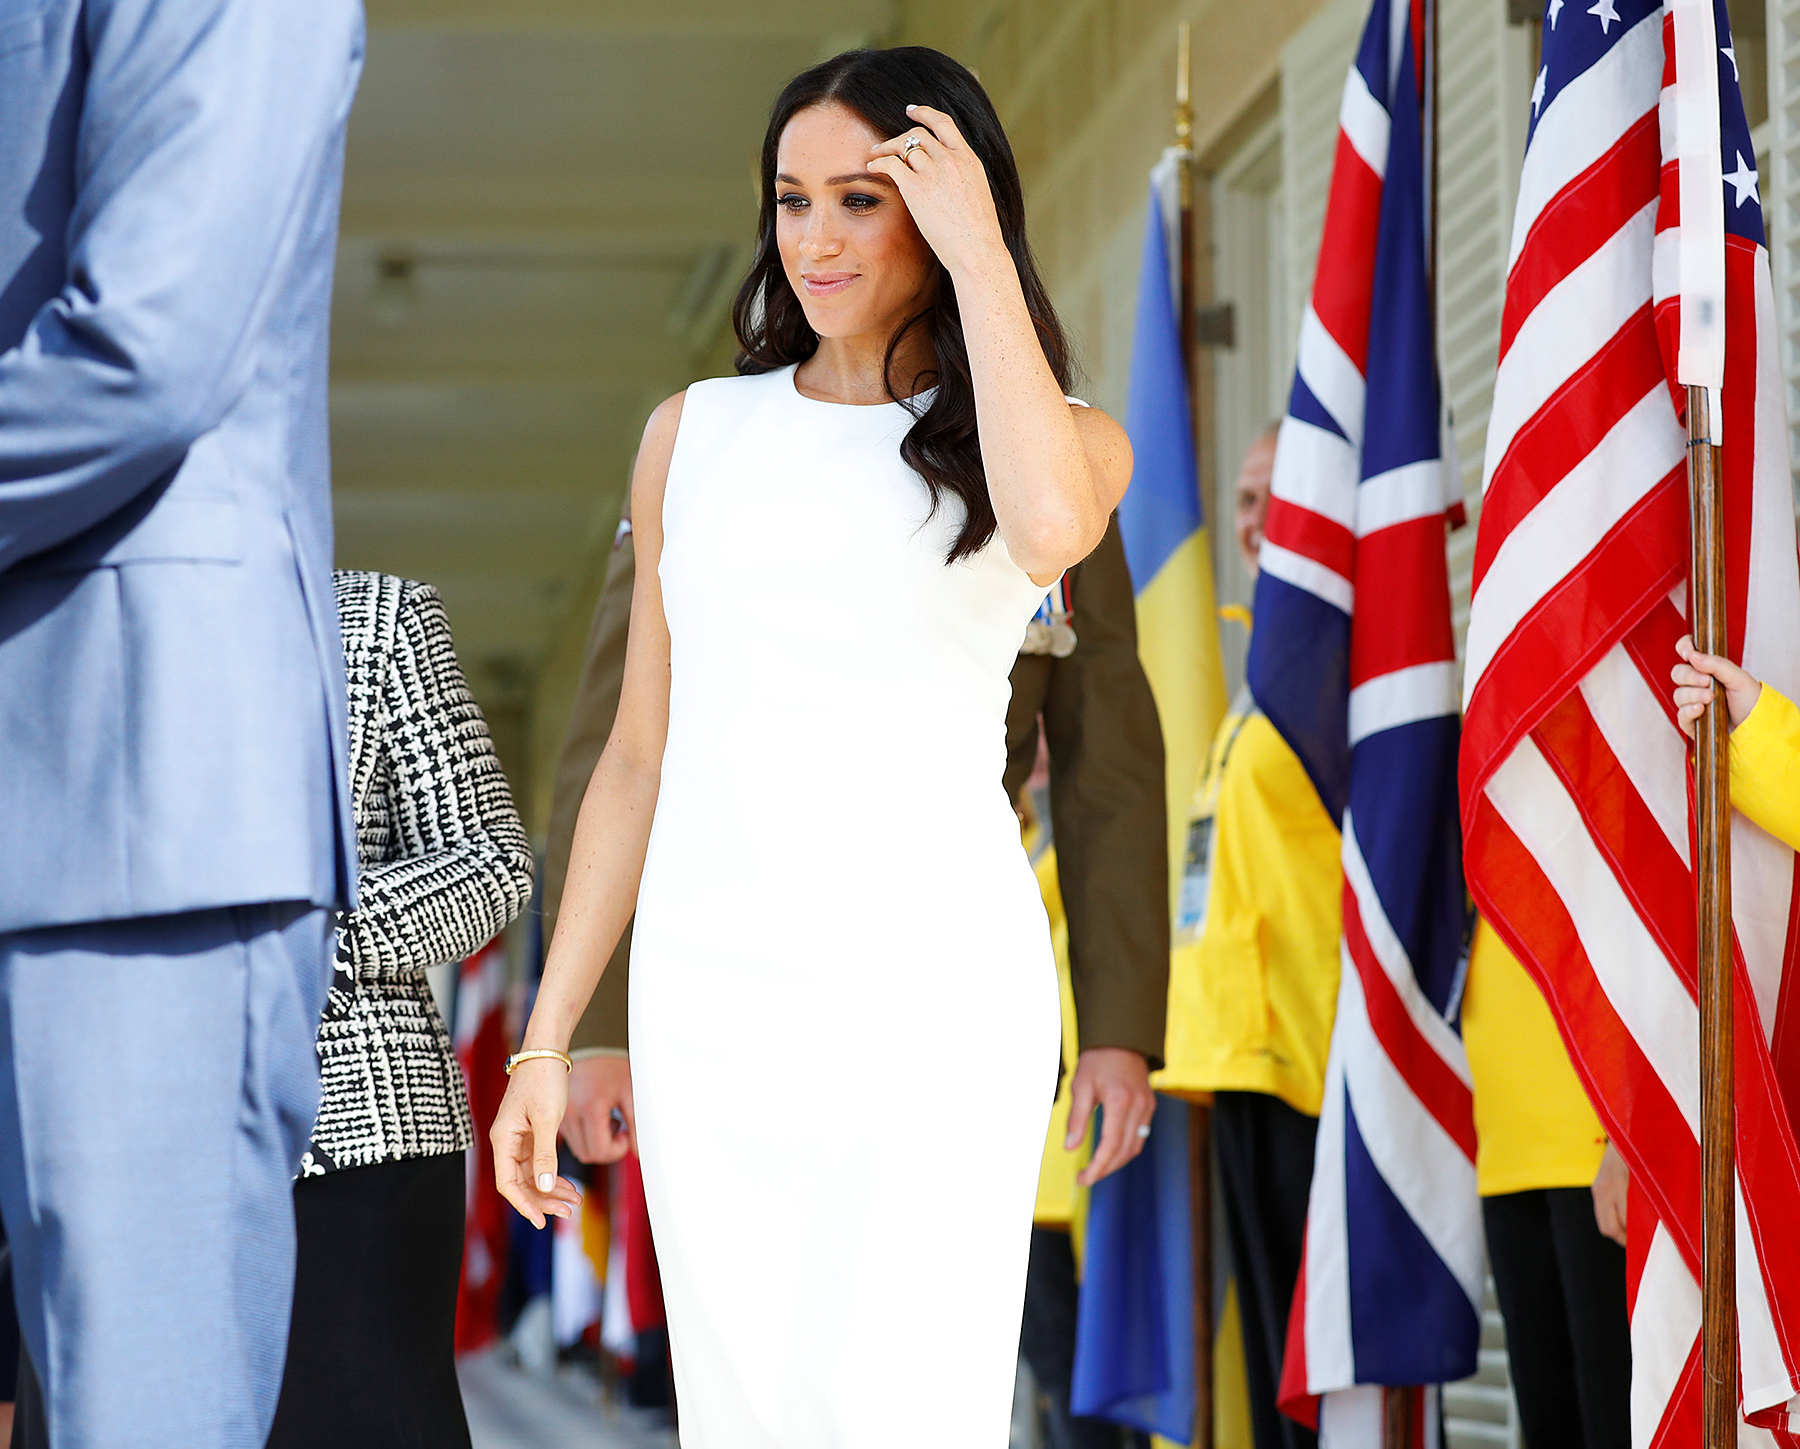 Meghan Markle, Meghan Markle (FINALLY) flaunts her cute baby bump for the first time